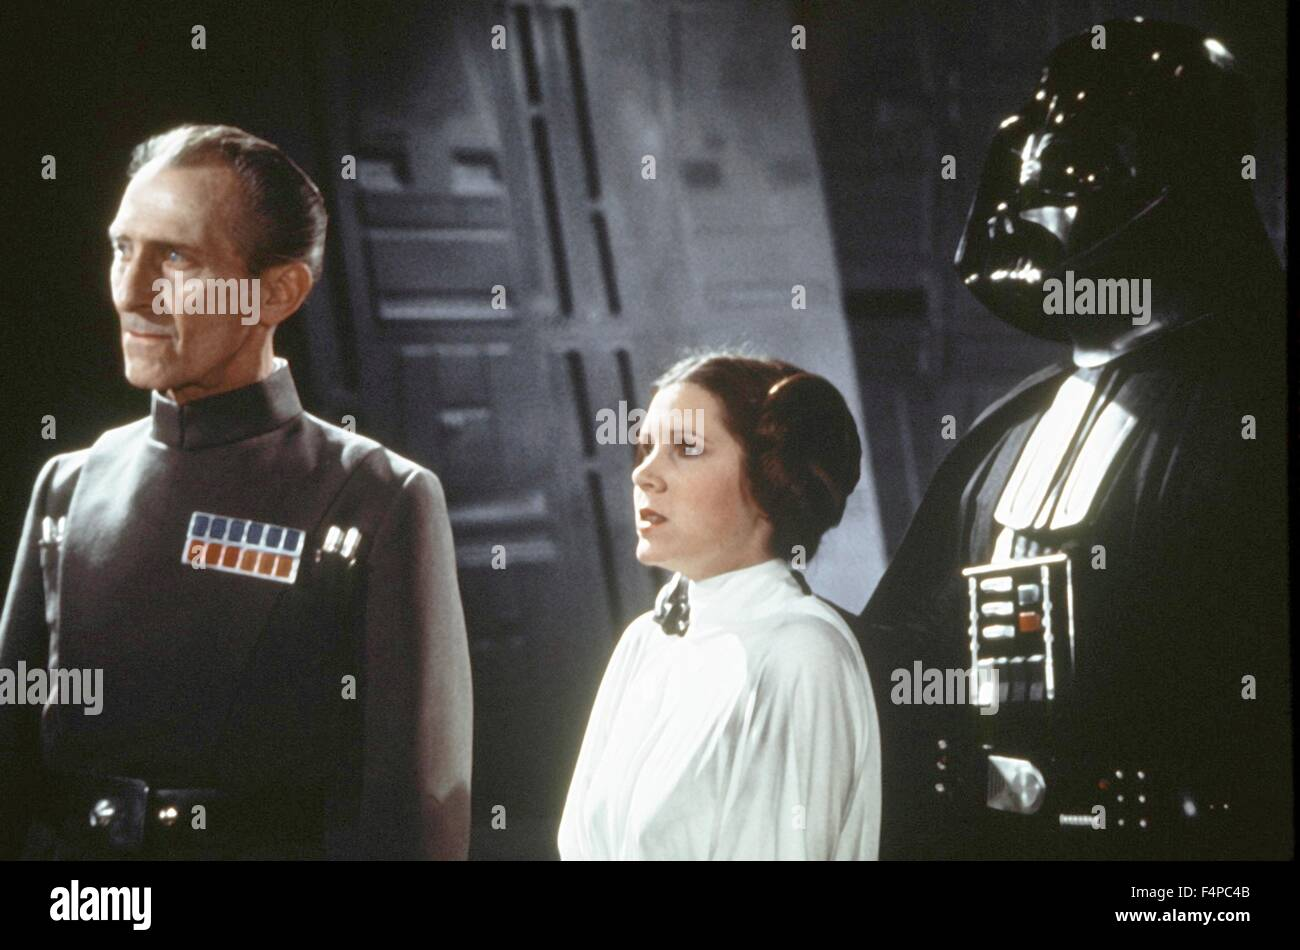 Peter Cushing, Carrie Fisher, David Prowse / Star Wars - A New Hope 1977 directed by George Lucas - Stock Image